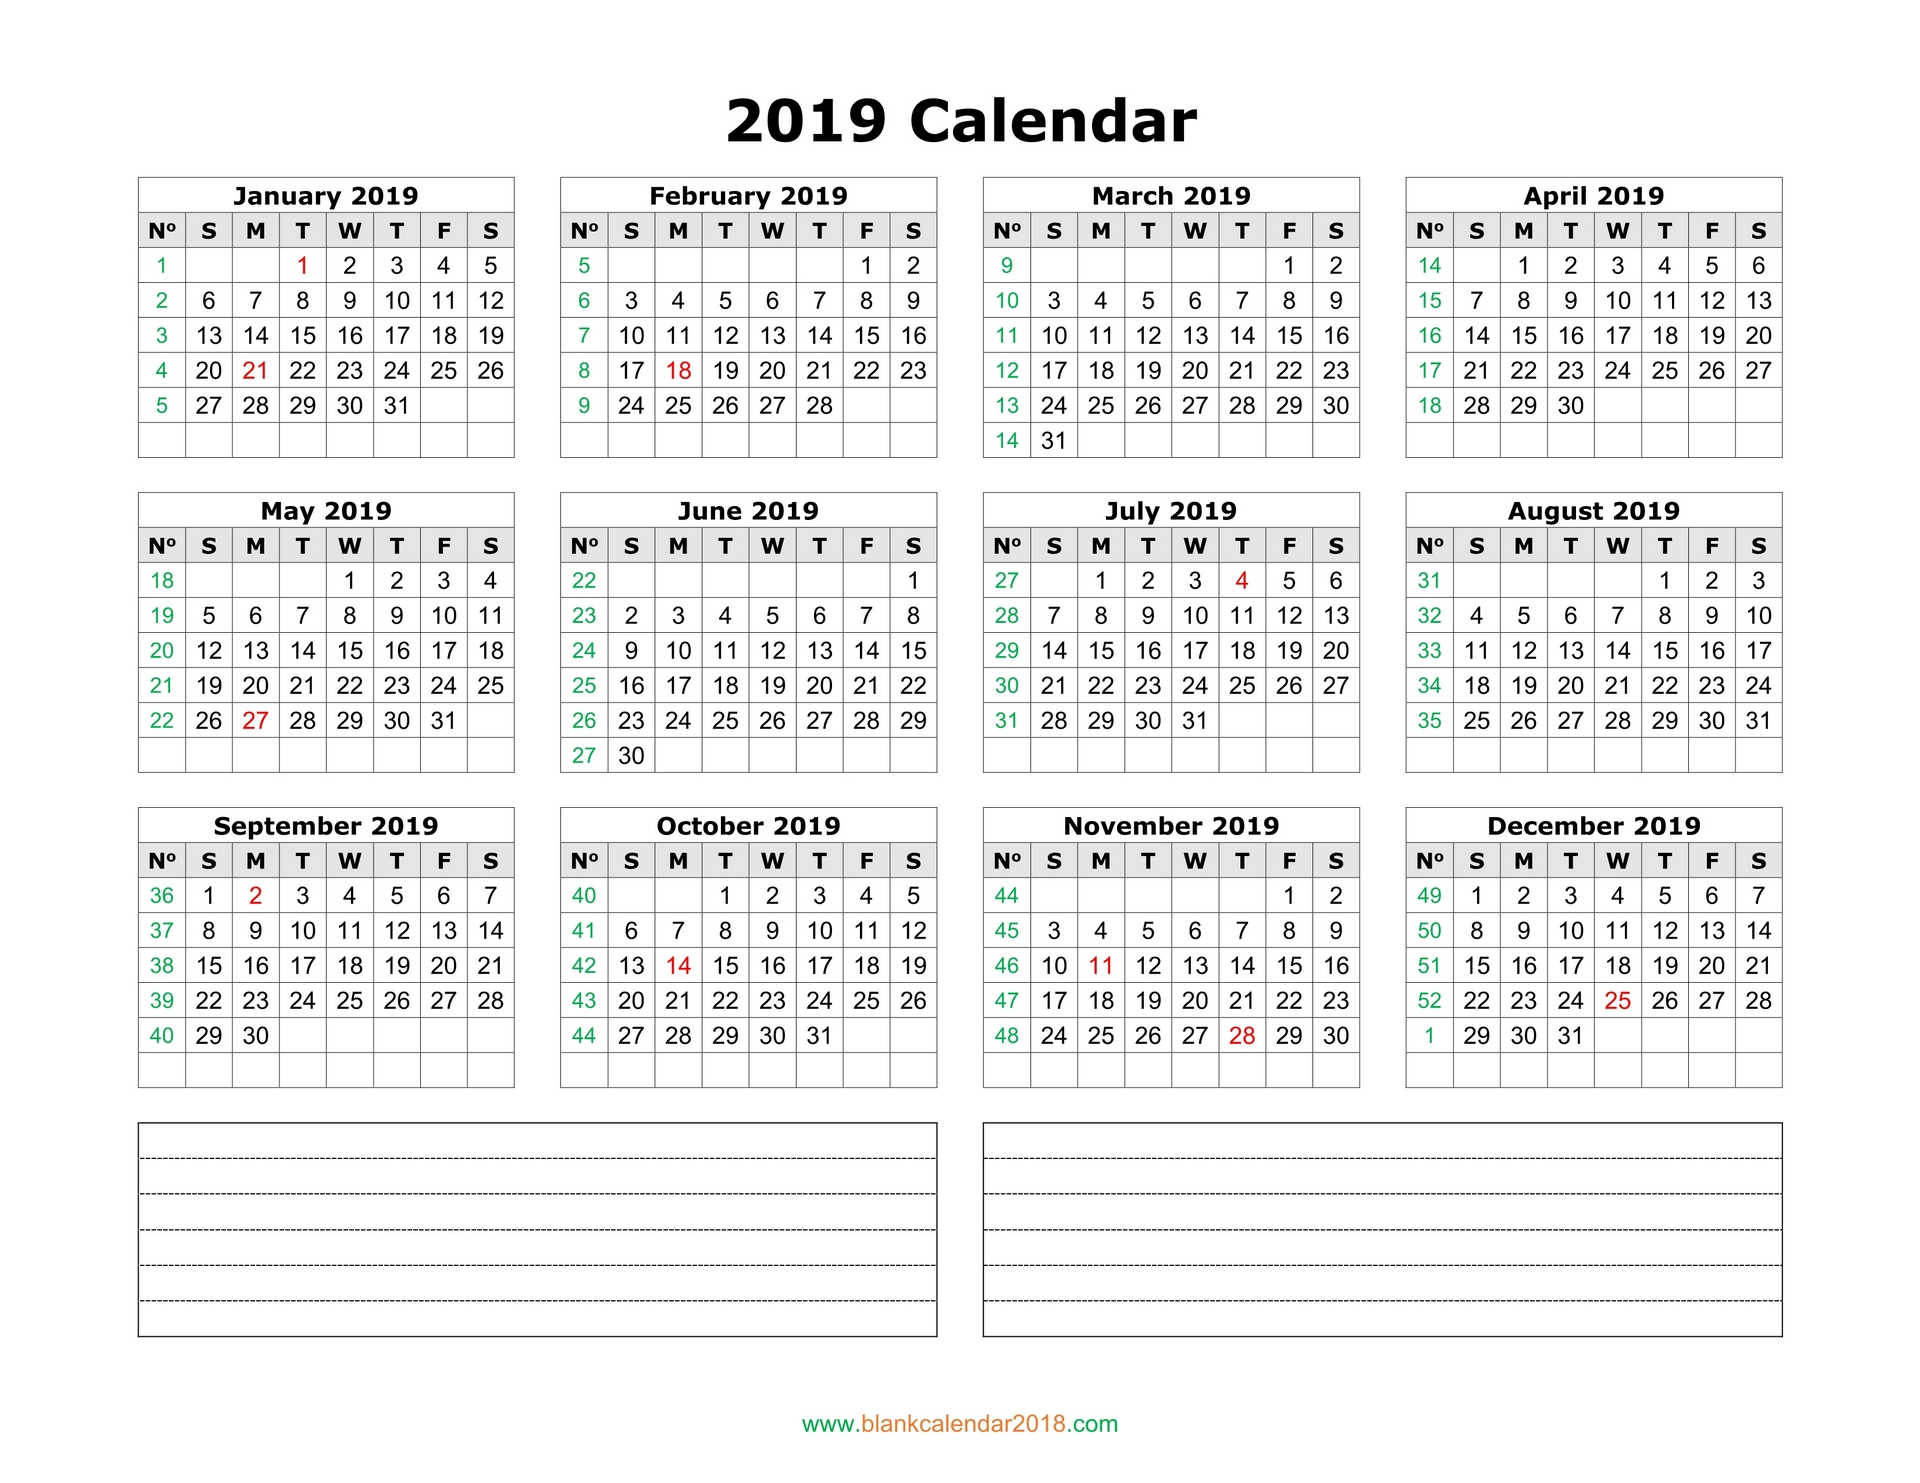 blank calendar 2019 with notes landscape, blank calendar 2019 printable month wise